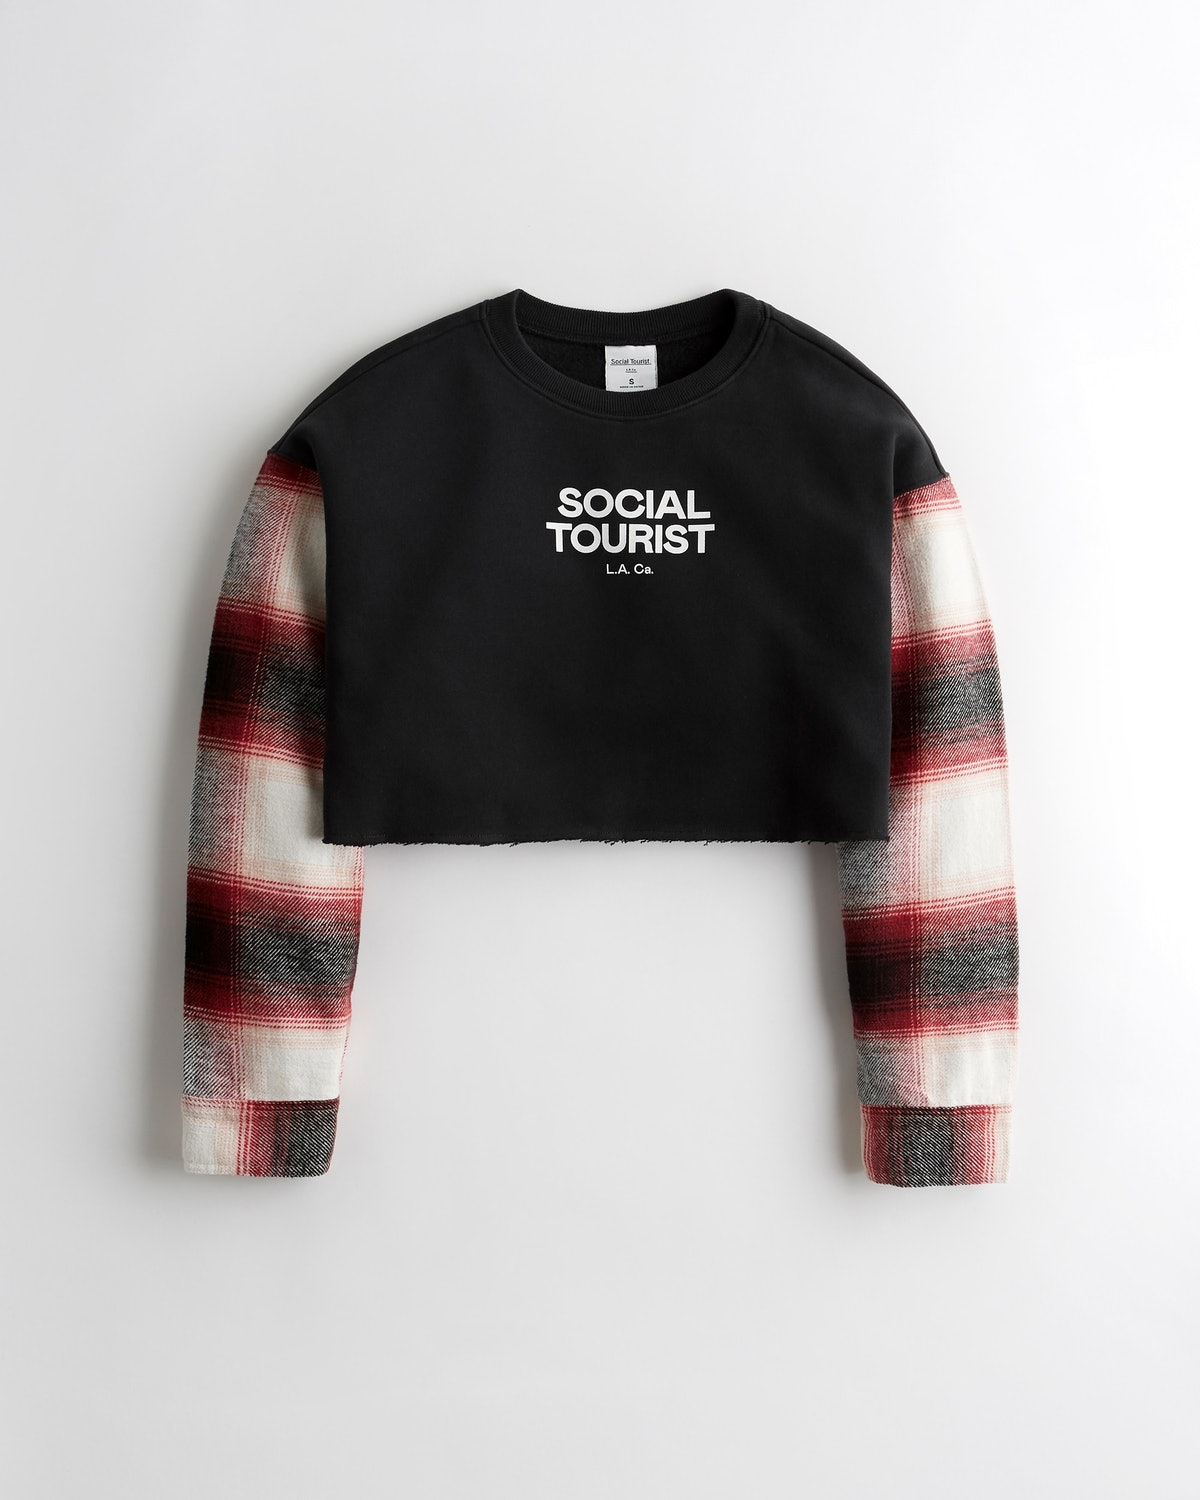 A product image of one of the cozy items available in the pre-launch limited edition collection of Charli and Dixie D'Amelio's new clothing brand Social Tourist.